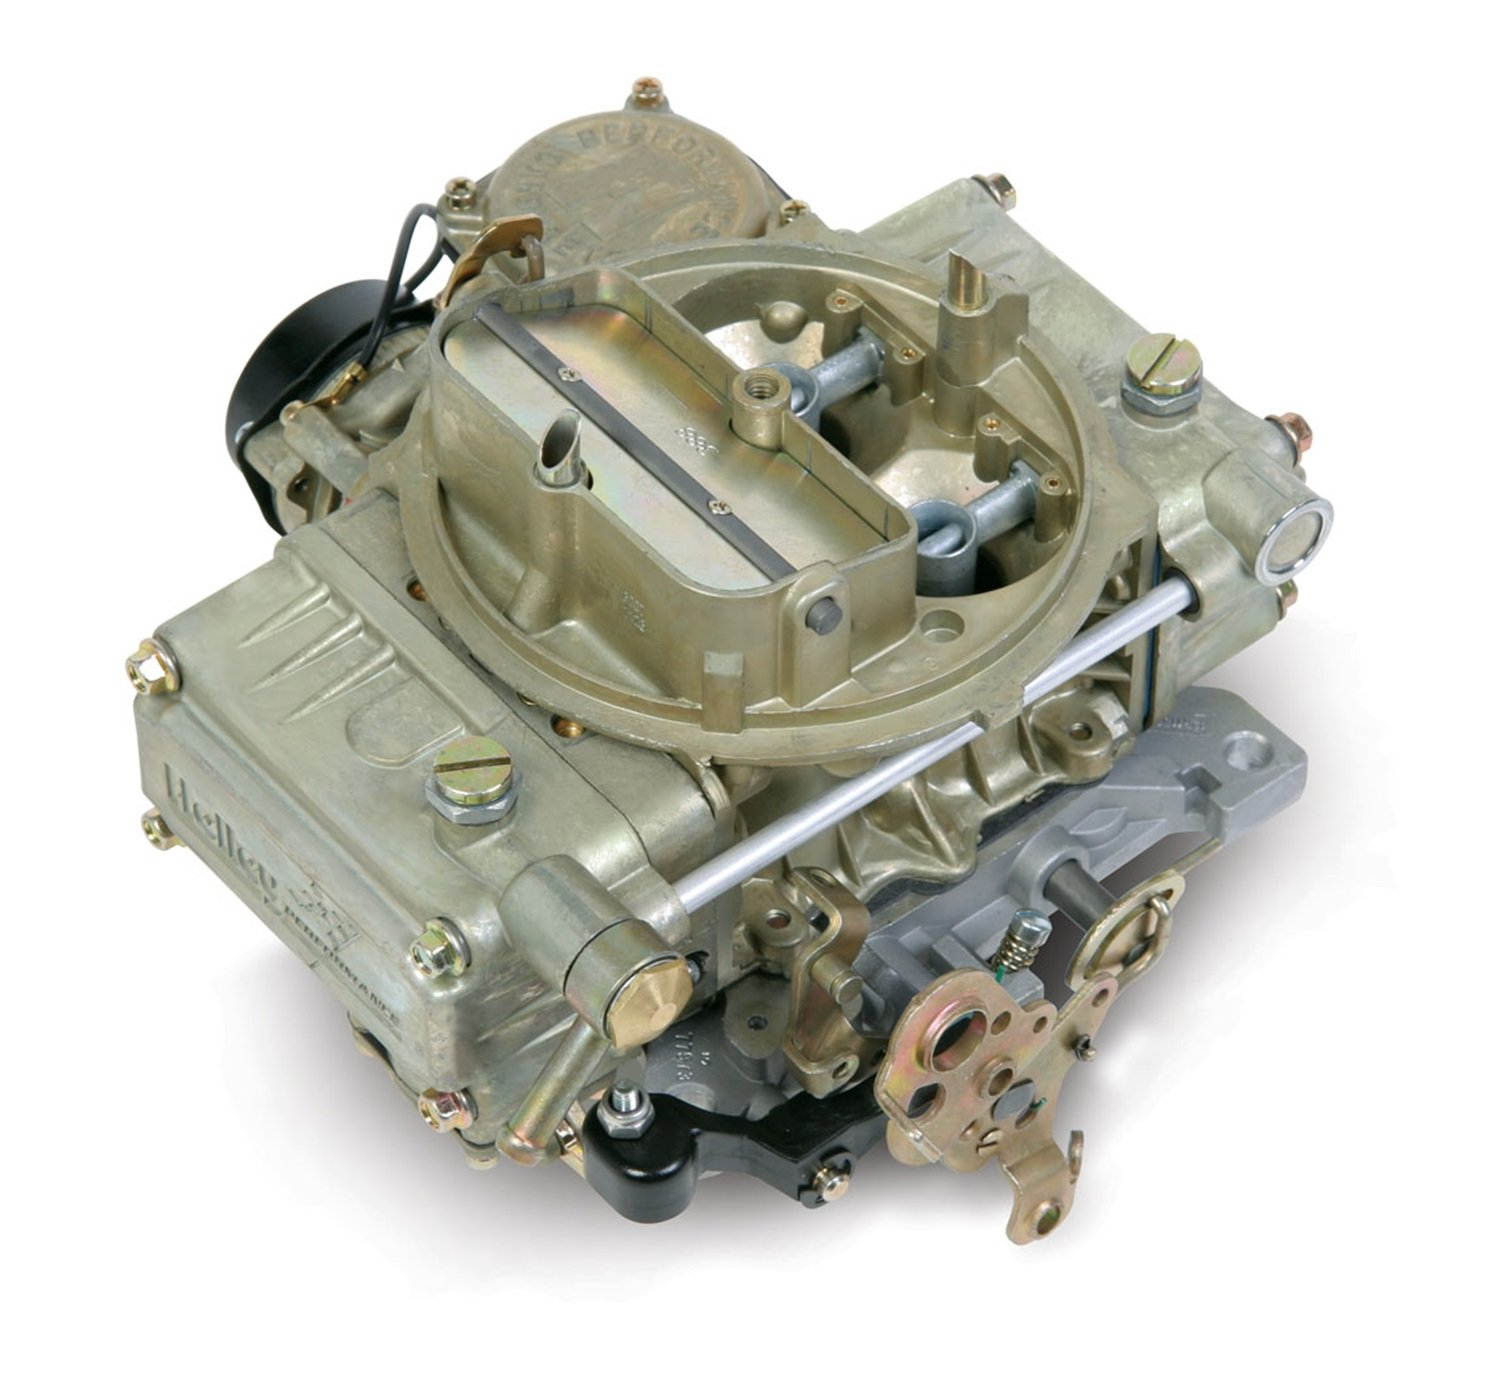 Holley 0-8007 Model 4160 390 CFM Square Bore 4-Barrel Vacuum Secondary Electric Choke New Carburetor by Holley